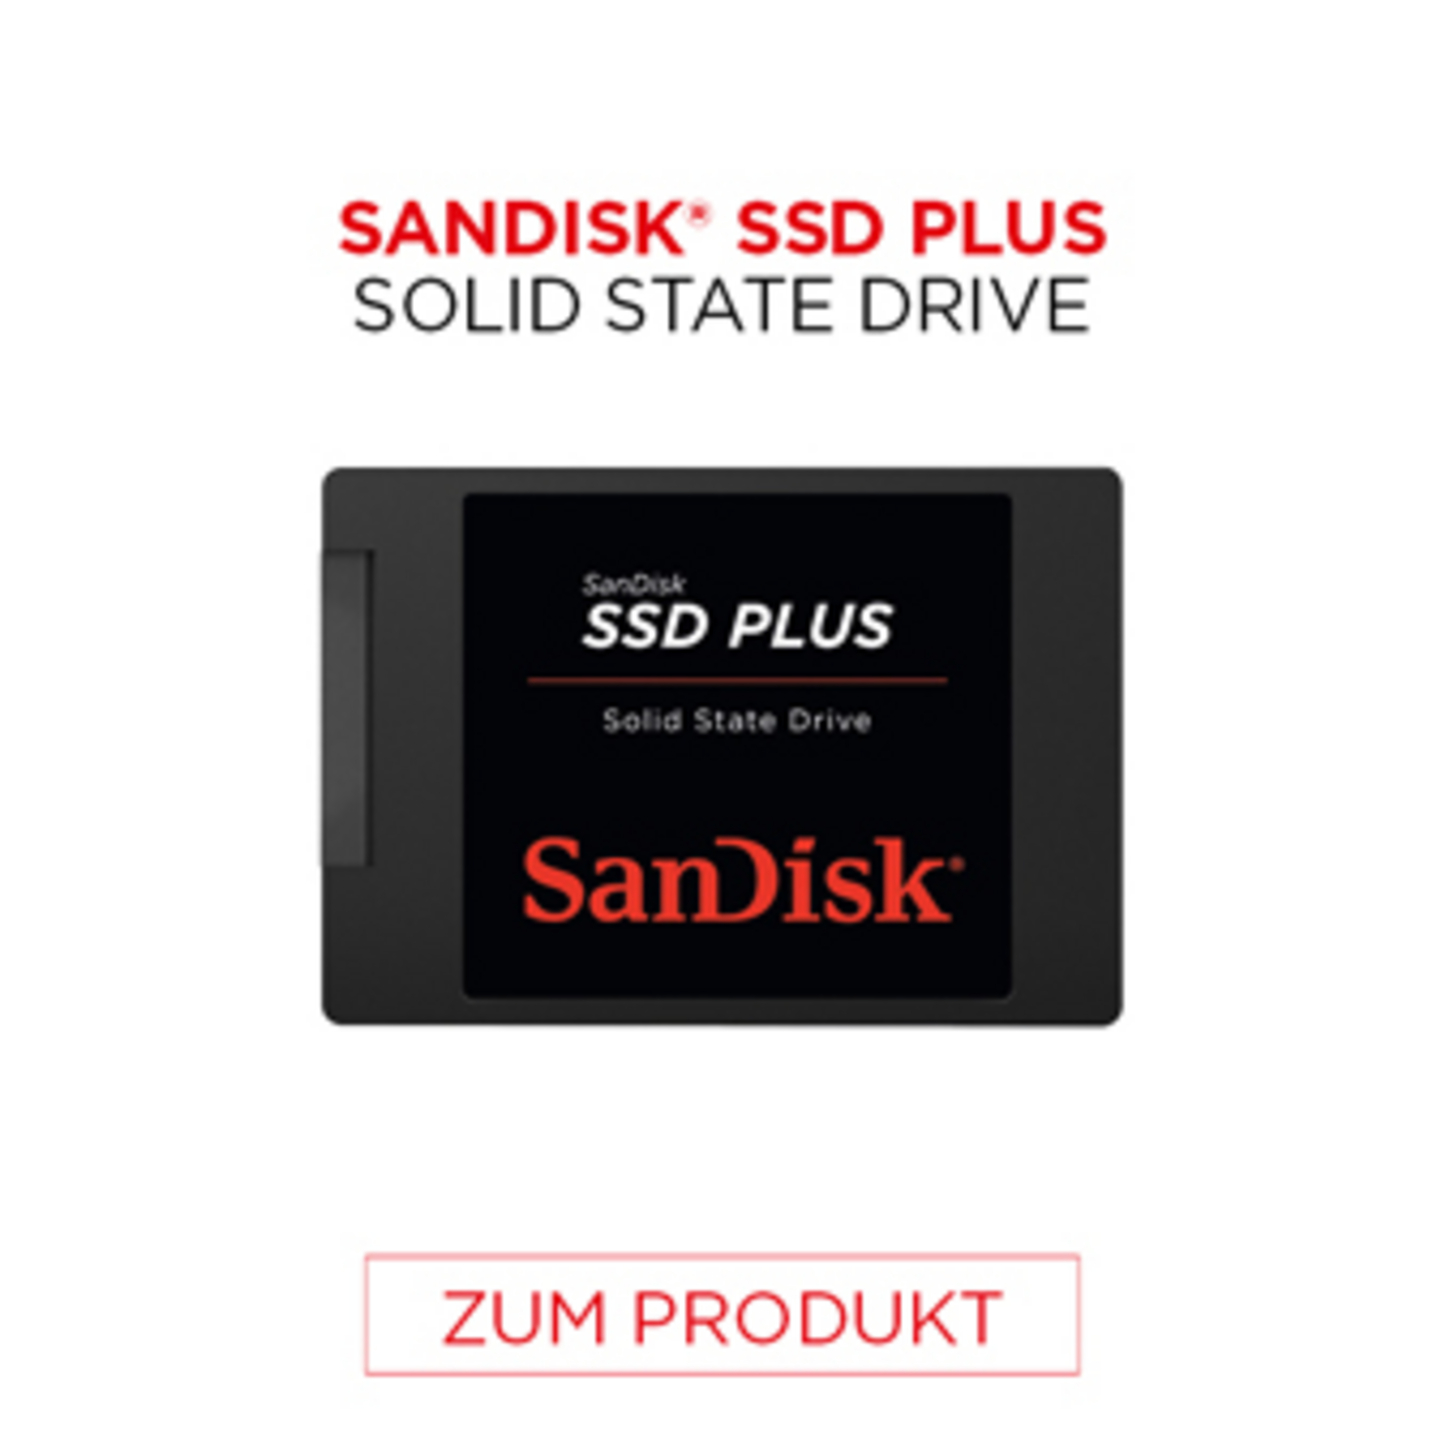 Sandisk SSD Plus Solid State Drive